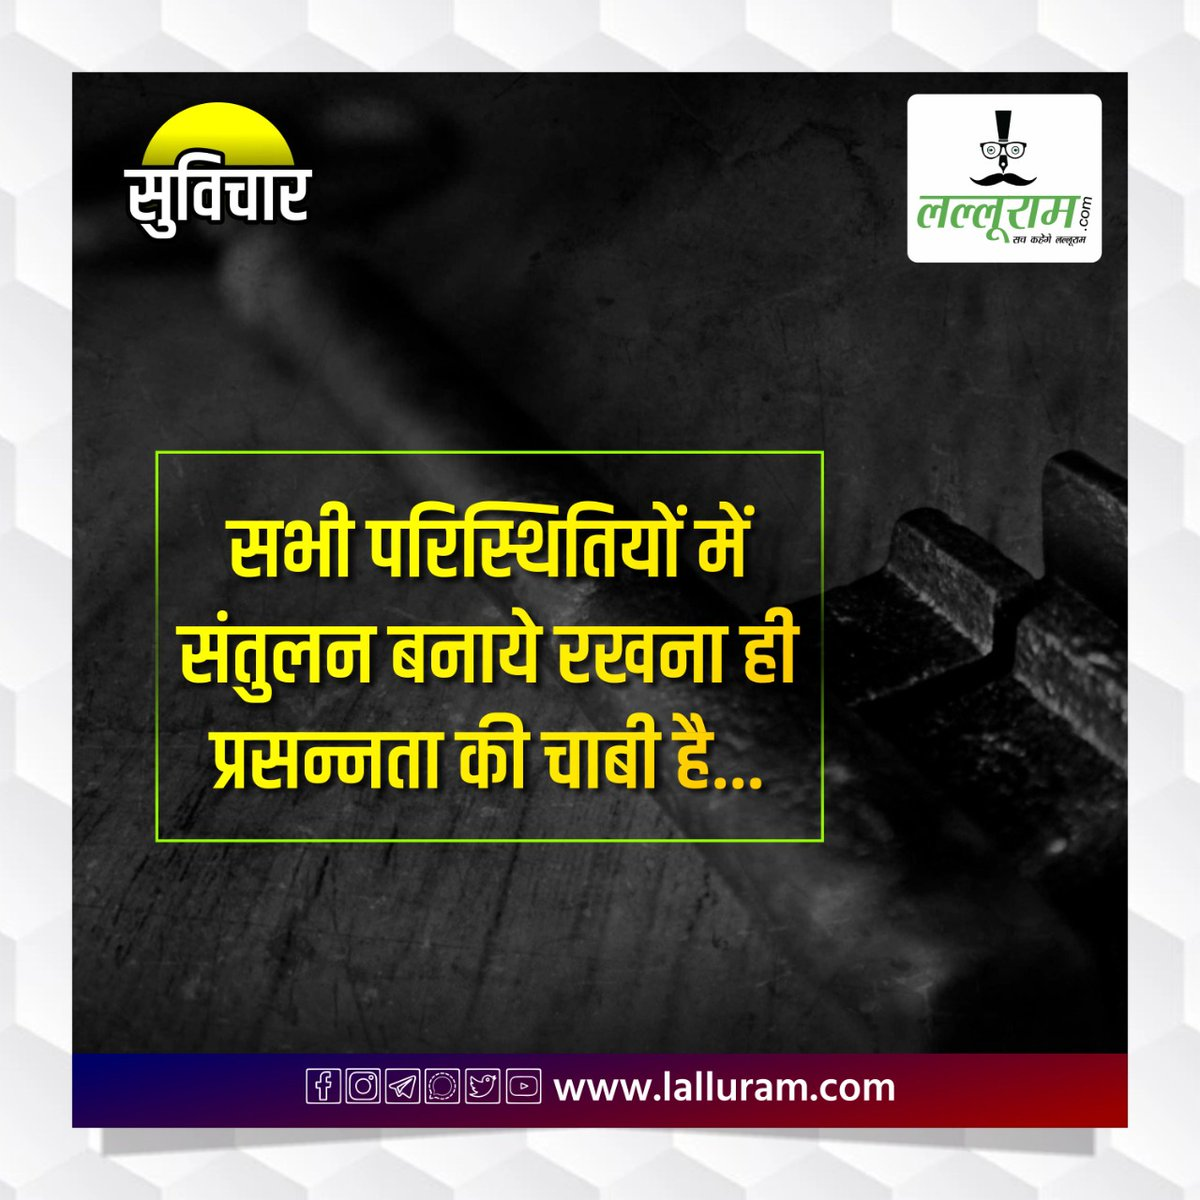 #tuesdayvibes #tuesdayMotivation #Tuesday #tuesdaytip #TuesdayThoughts #thoughtoftheday #ThoughtForTheDay #MotivationalQuotes #motivation #inspirational #LalluramNews #news